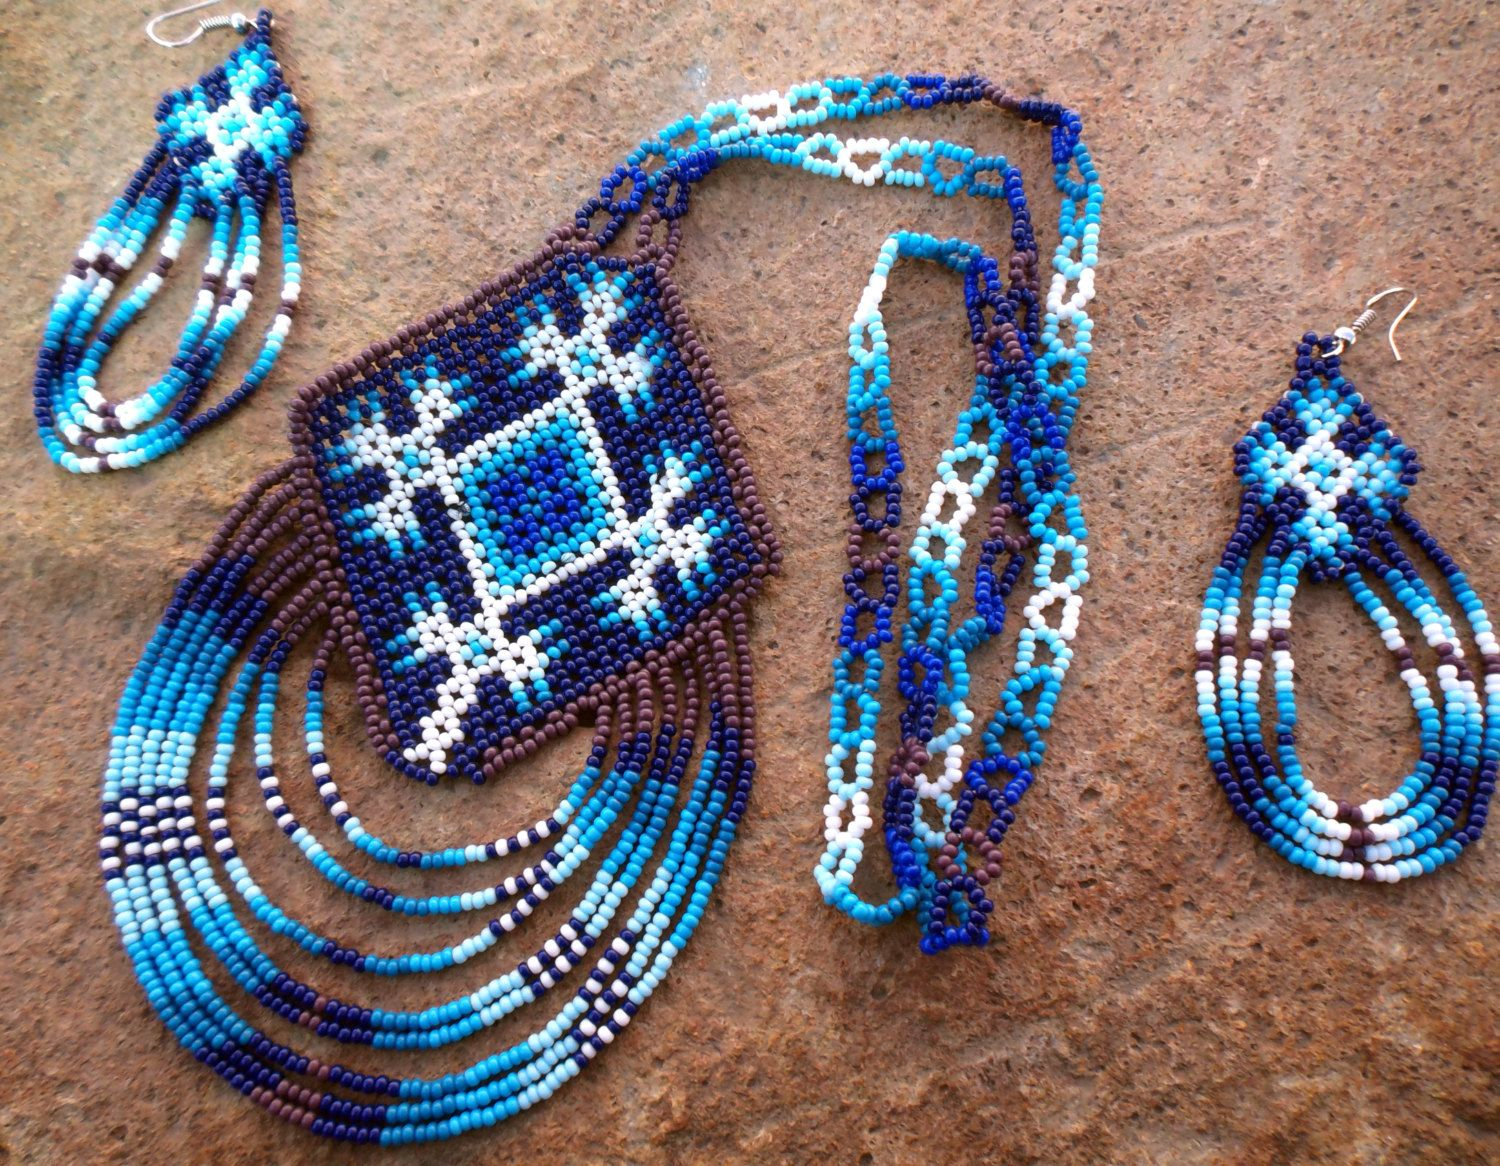 Mexican Huichol Beaded Ojo de Dios - Eye of God Necklace and earrings set by Aramara on Etsy